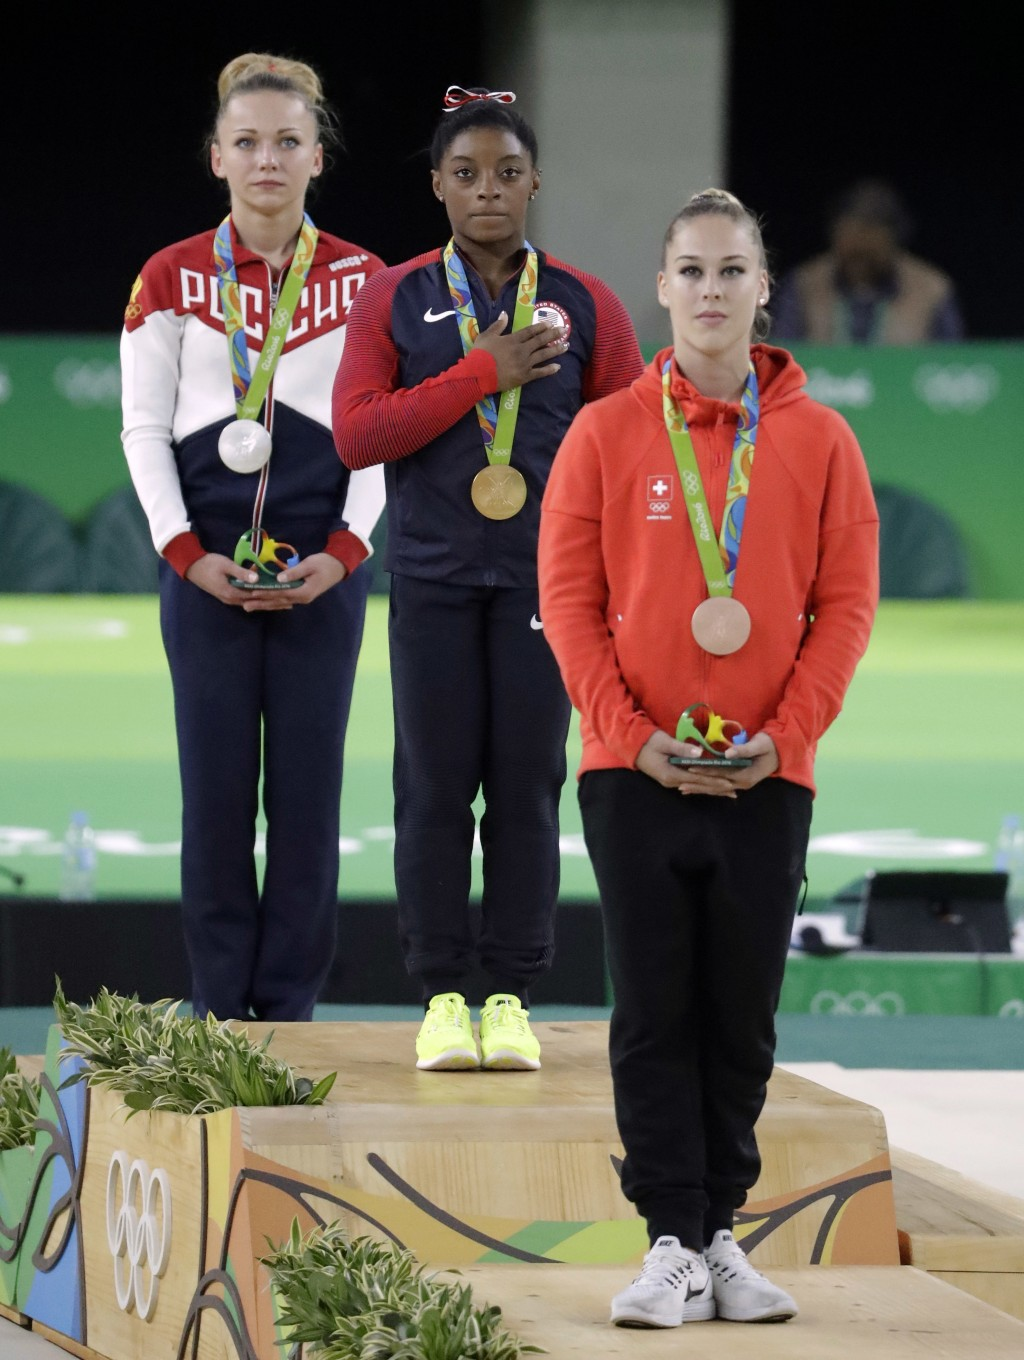 FILE - In this Sunday, Aug. 14, 2016 file photo, United States' Simone Biles, gold medal winner for vault, stands for her national anthem flanked by s...